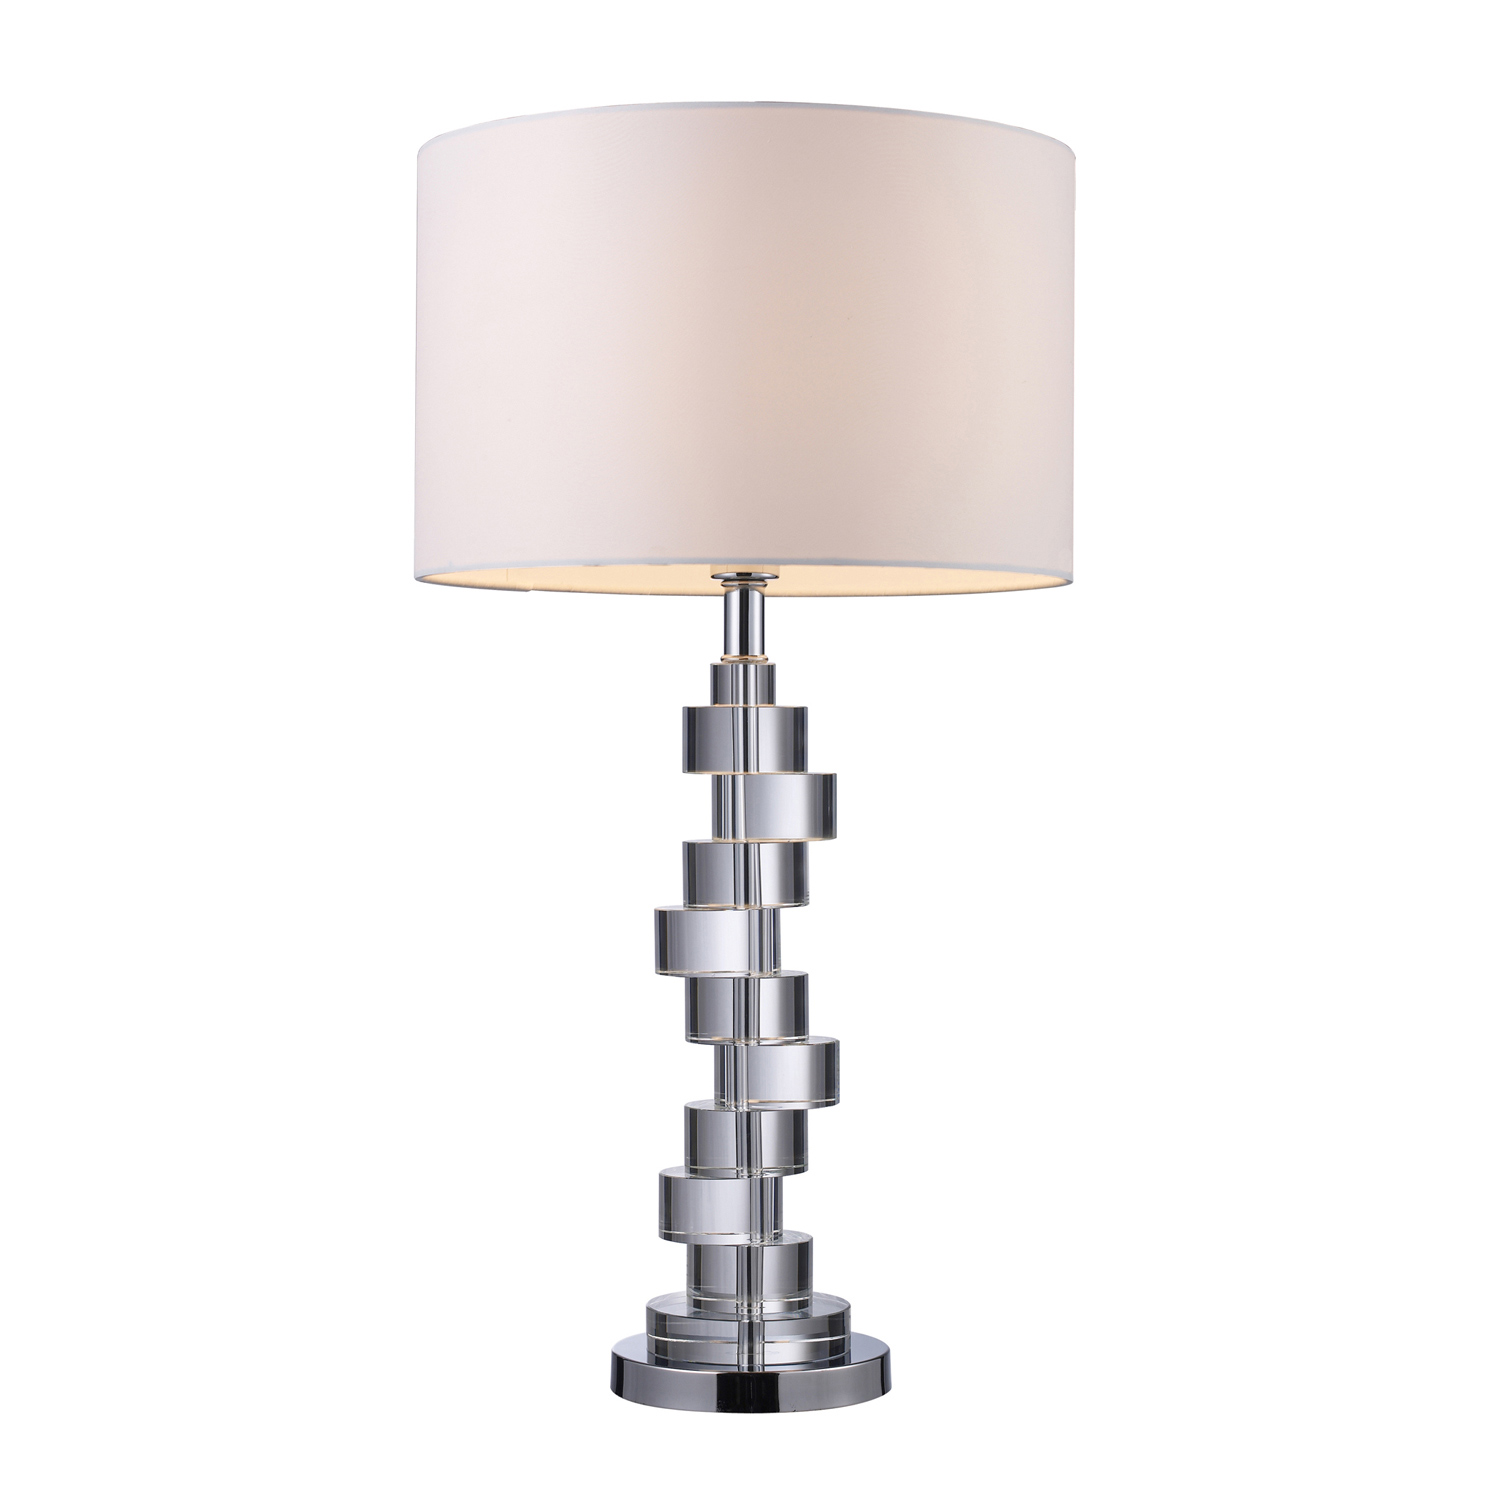 Elk Lighting D1480 Armagh Table Lamp - Clear Crystal and Chrome